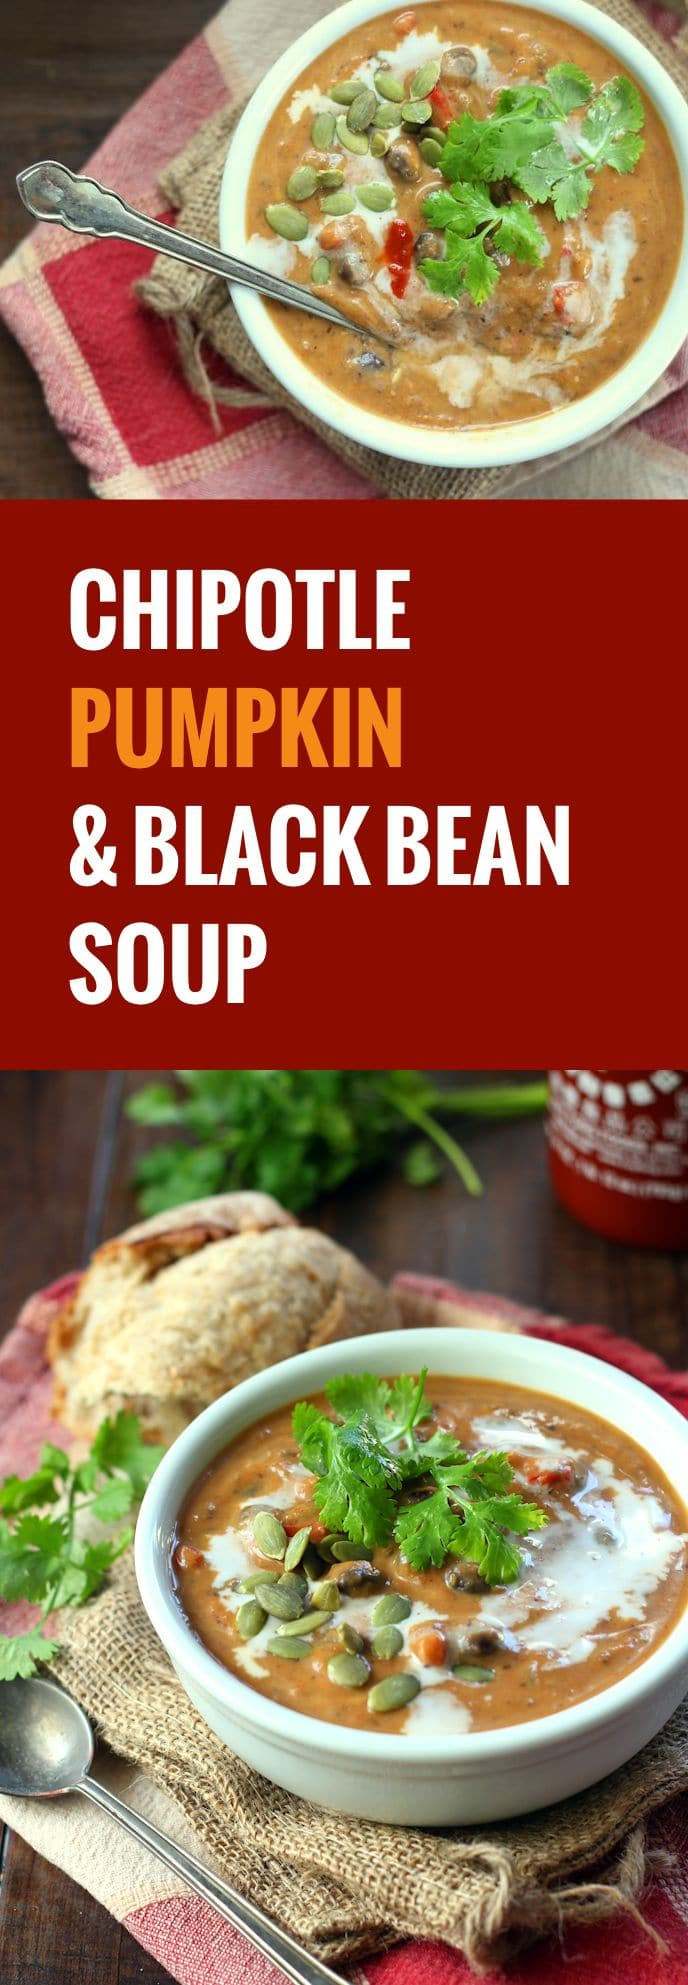 ... soup with chipotle chiles pumpkin soup pumpkin soup chipotle pumpkin